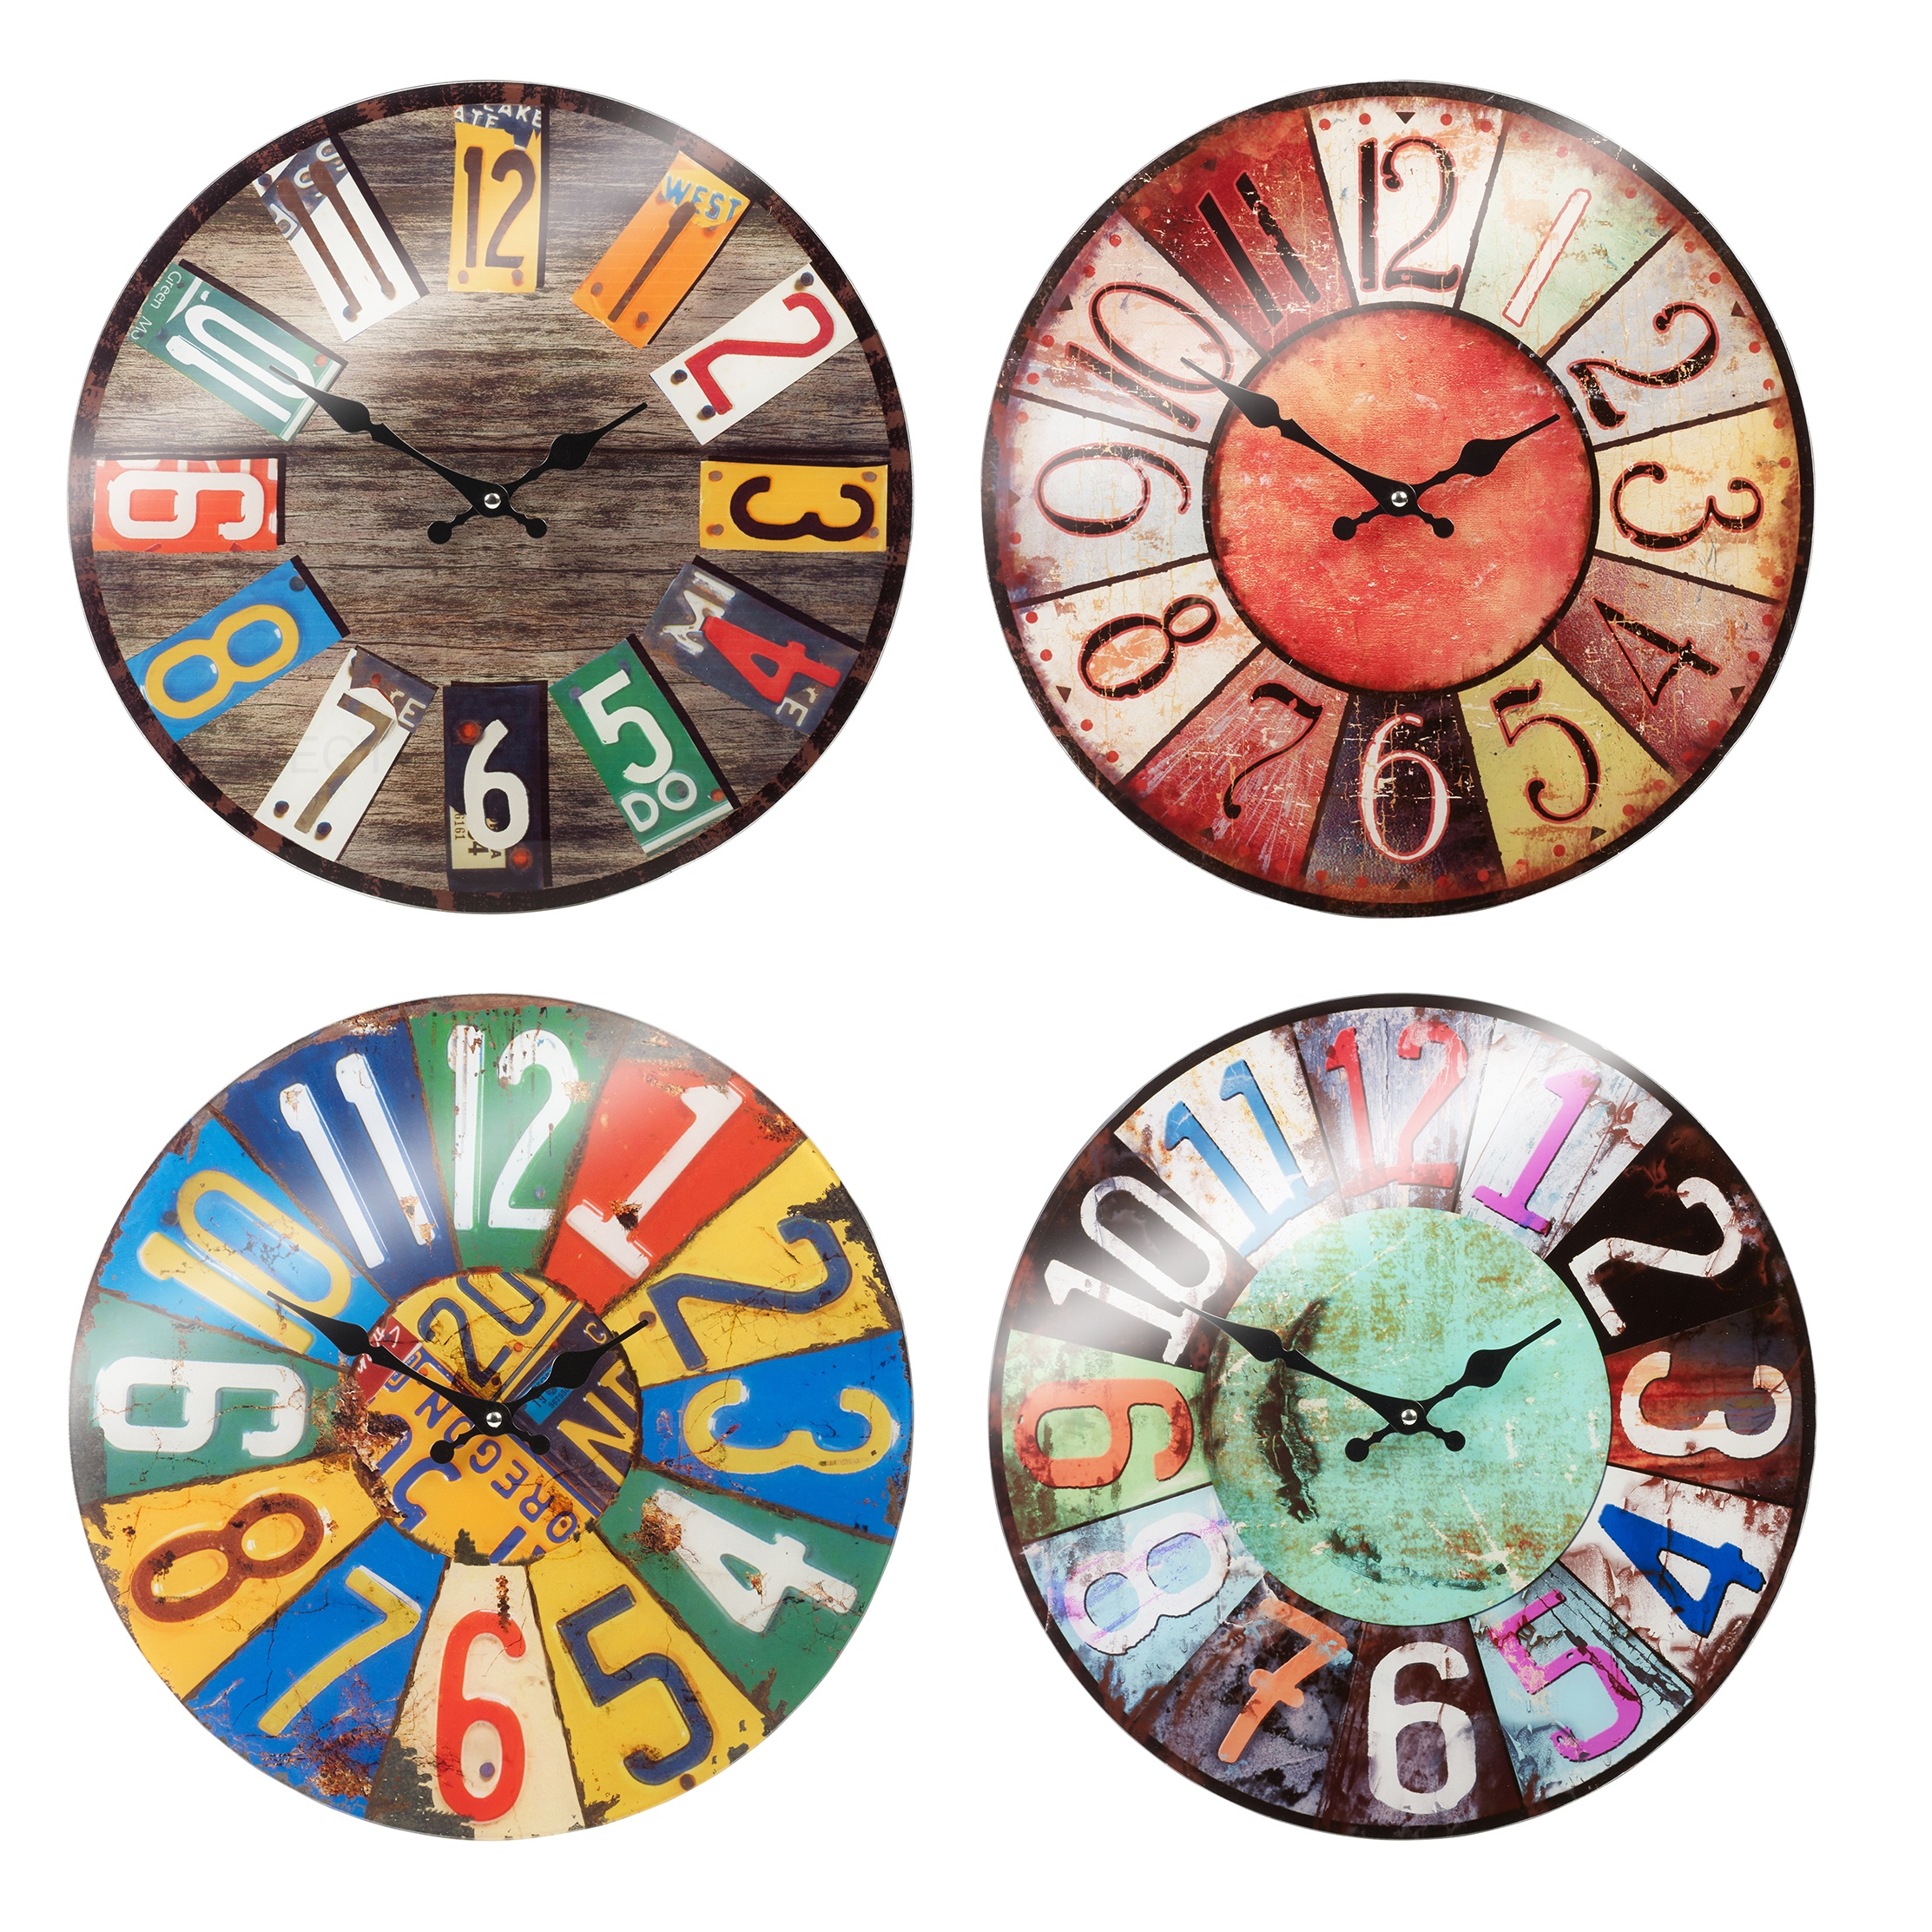 38cm large round glass shabby wall clock vintage retro - Horloge murale 60 cm ...